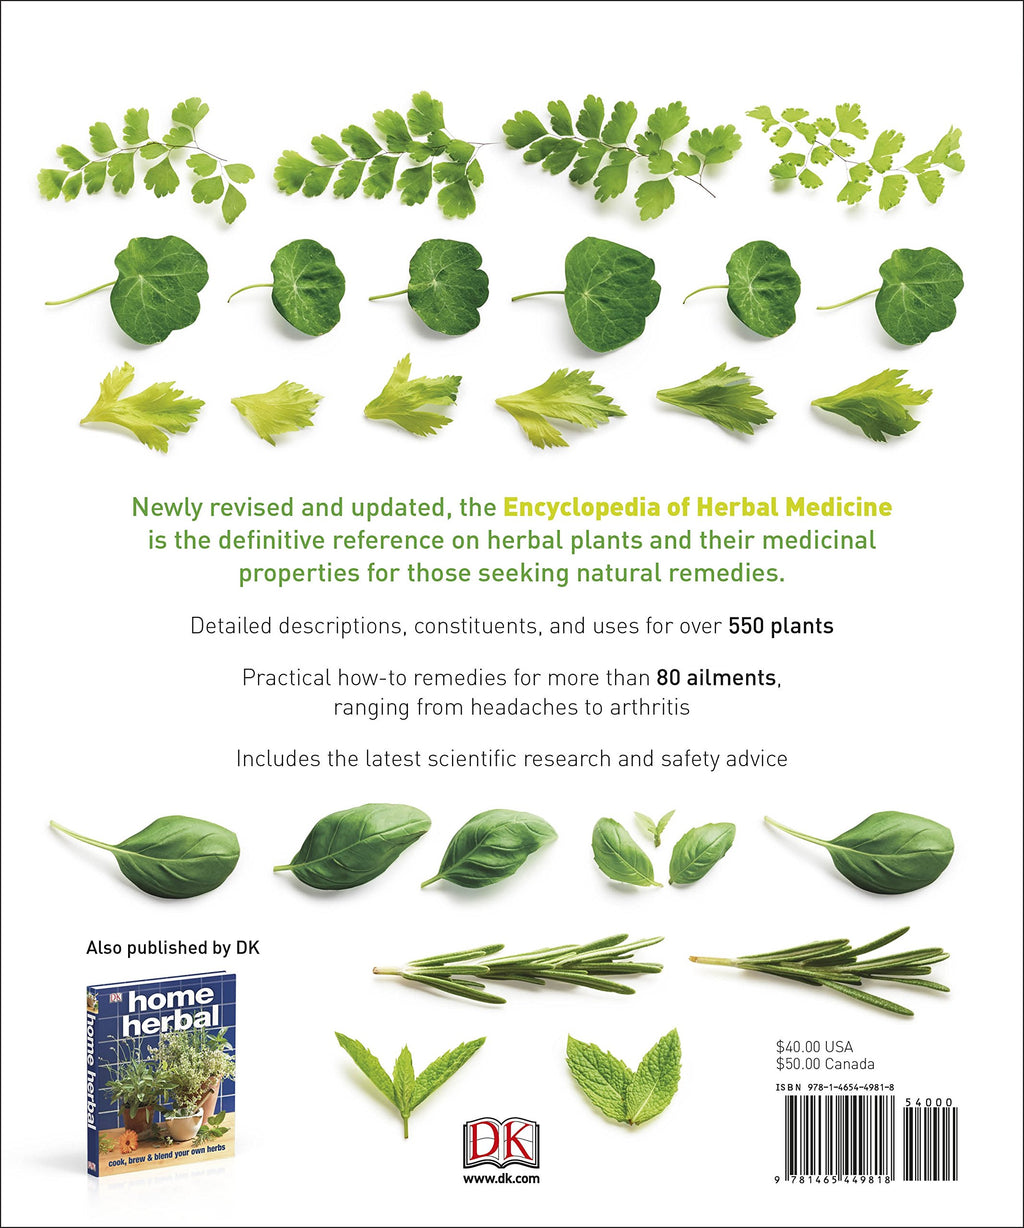 Encyclopedia of Herbal Medicine by DK